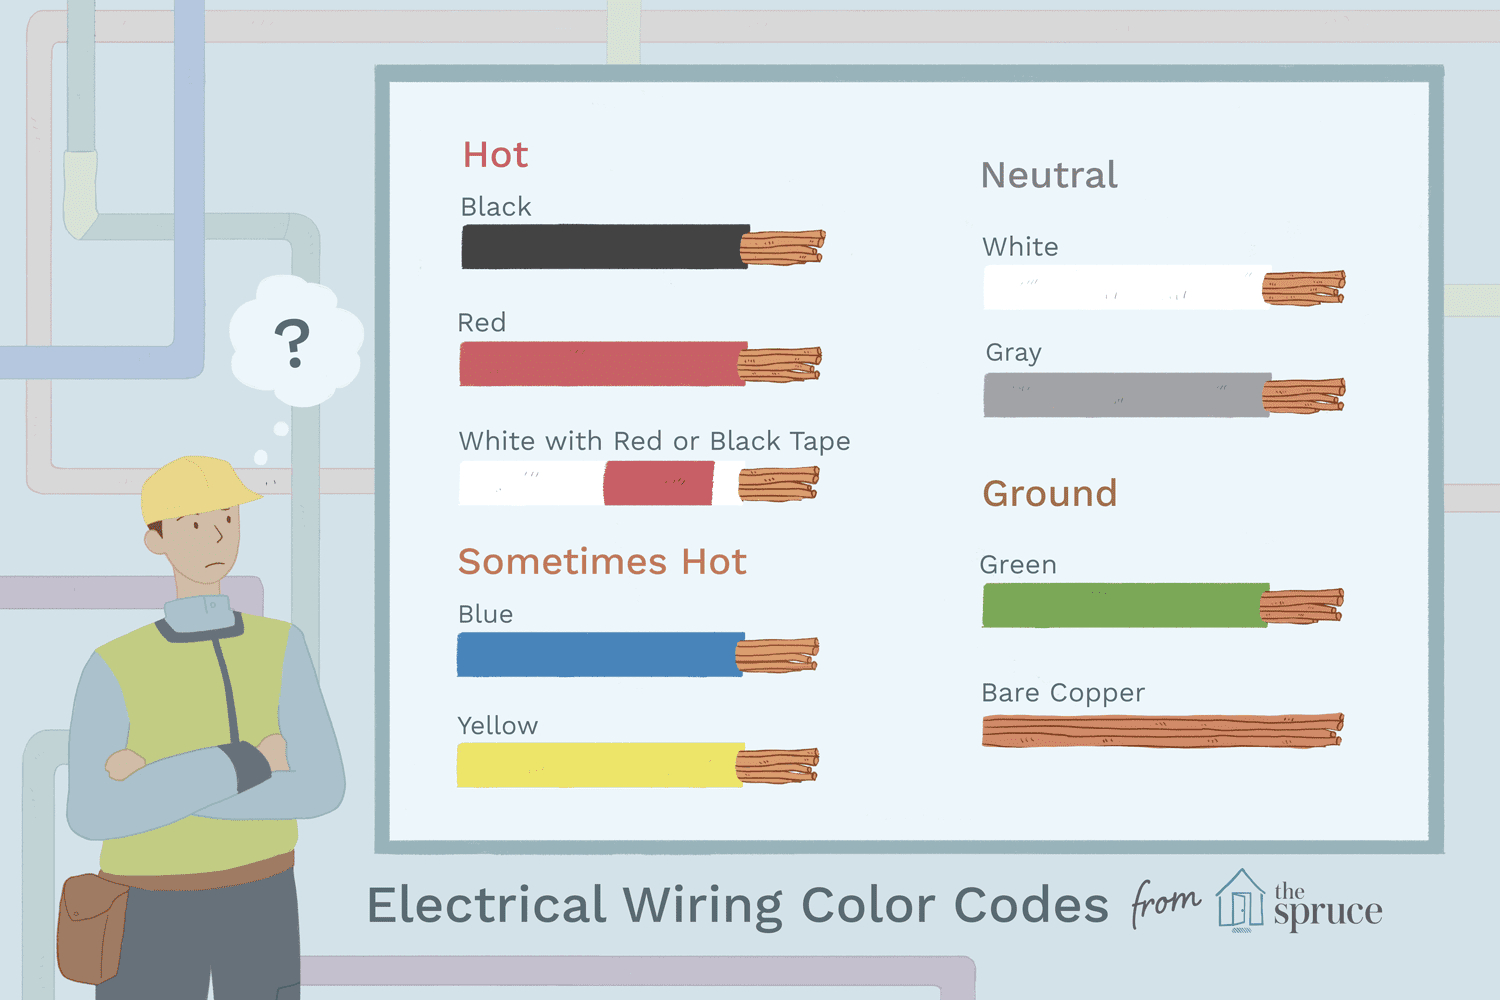 Electrical Wiring Color Coding System - Wiring Diagram Color Codes